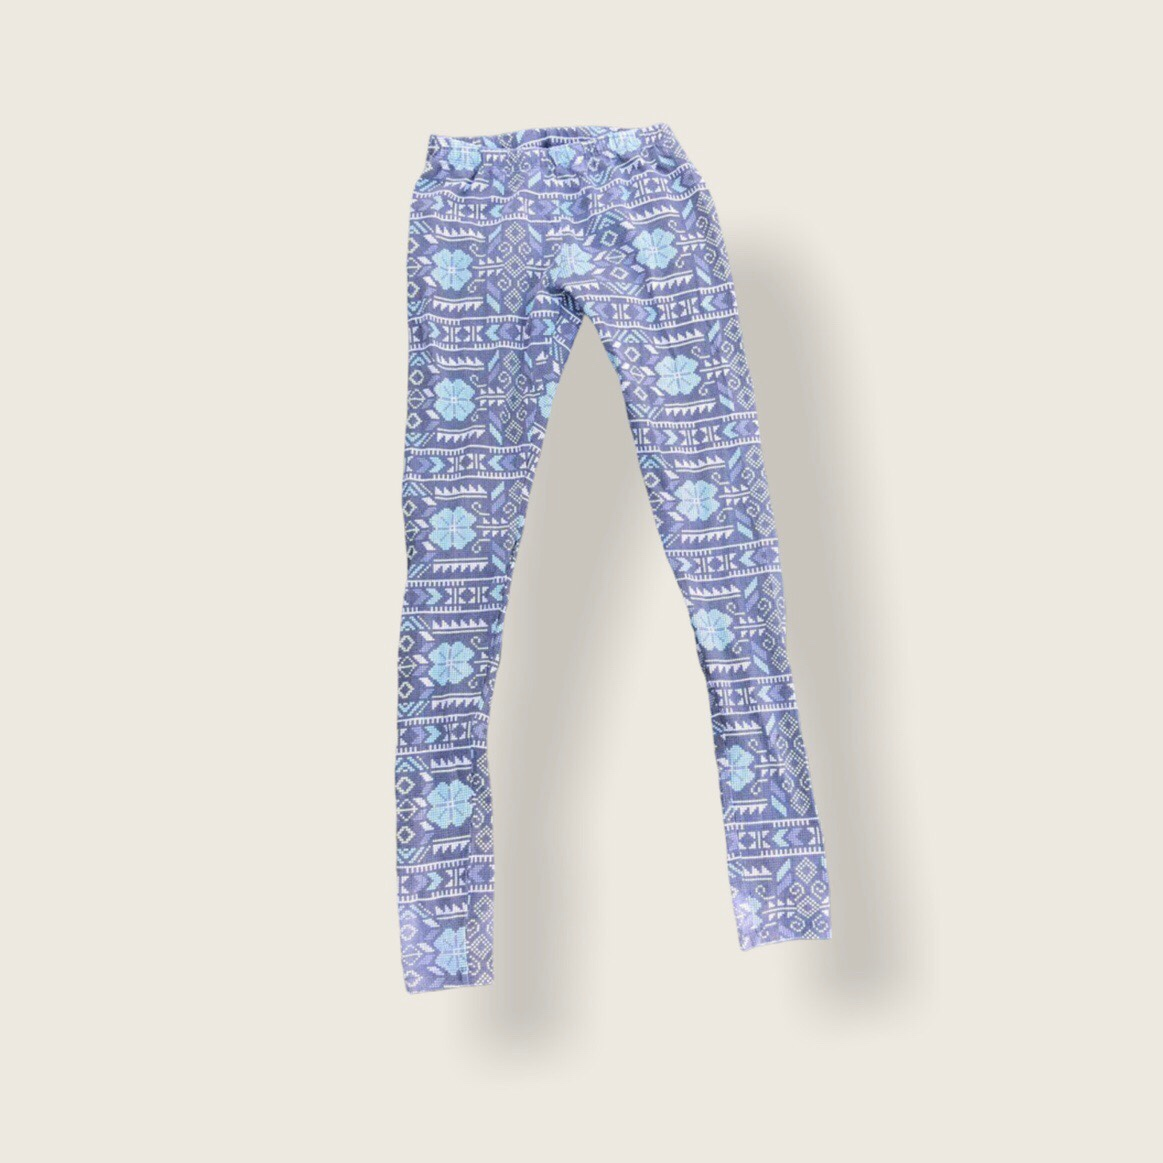 Product Image 1 - mossimo leggings, grey with a